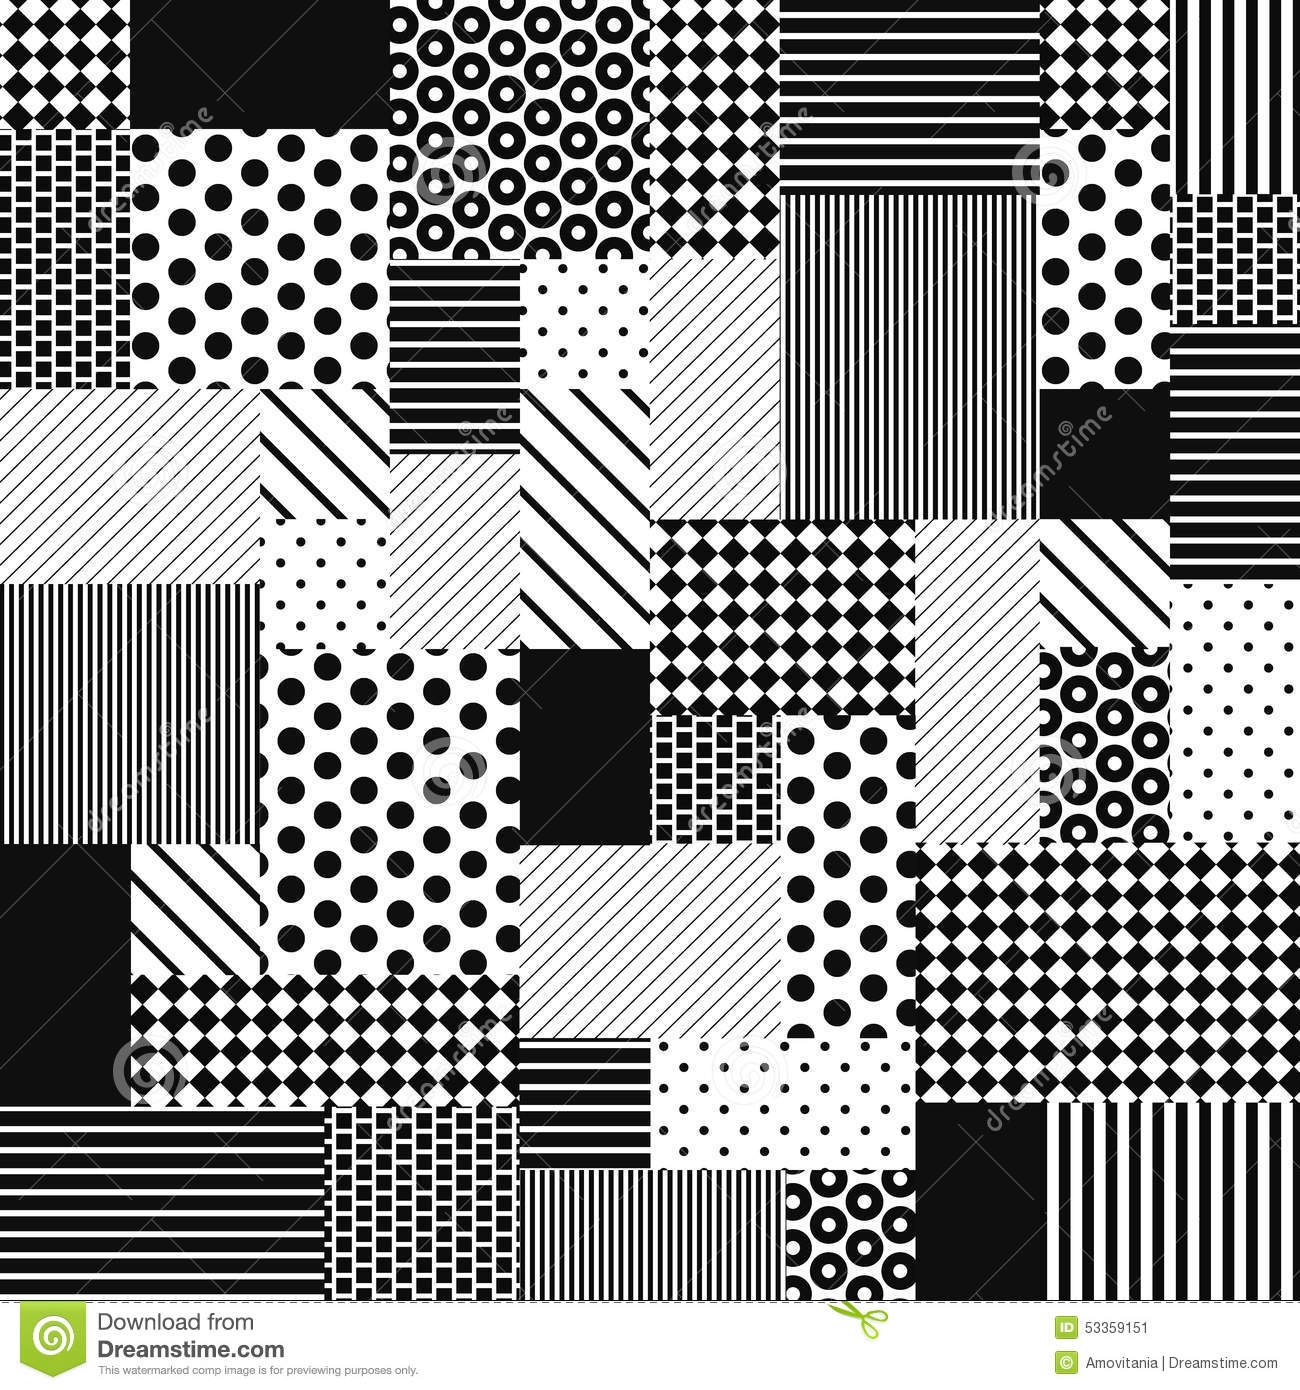 Black And White Line Designs : Abstract black and white patchwork stock vector image